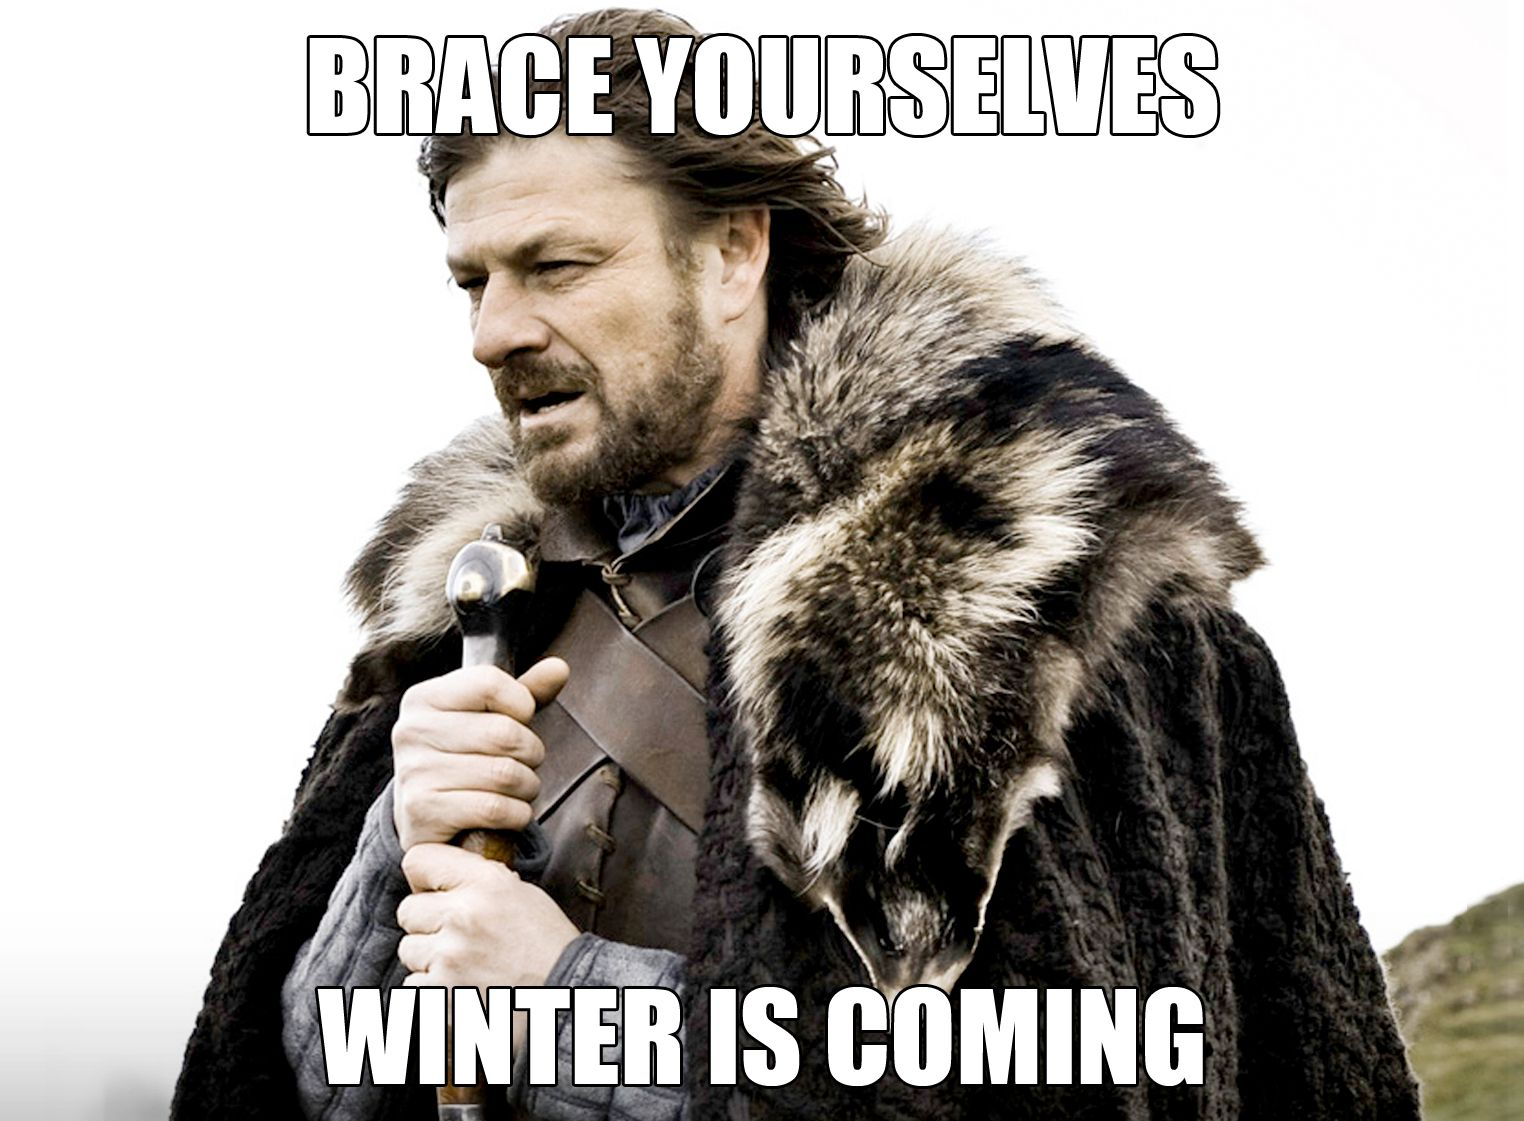 Brace yourselves, Winter is coming.